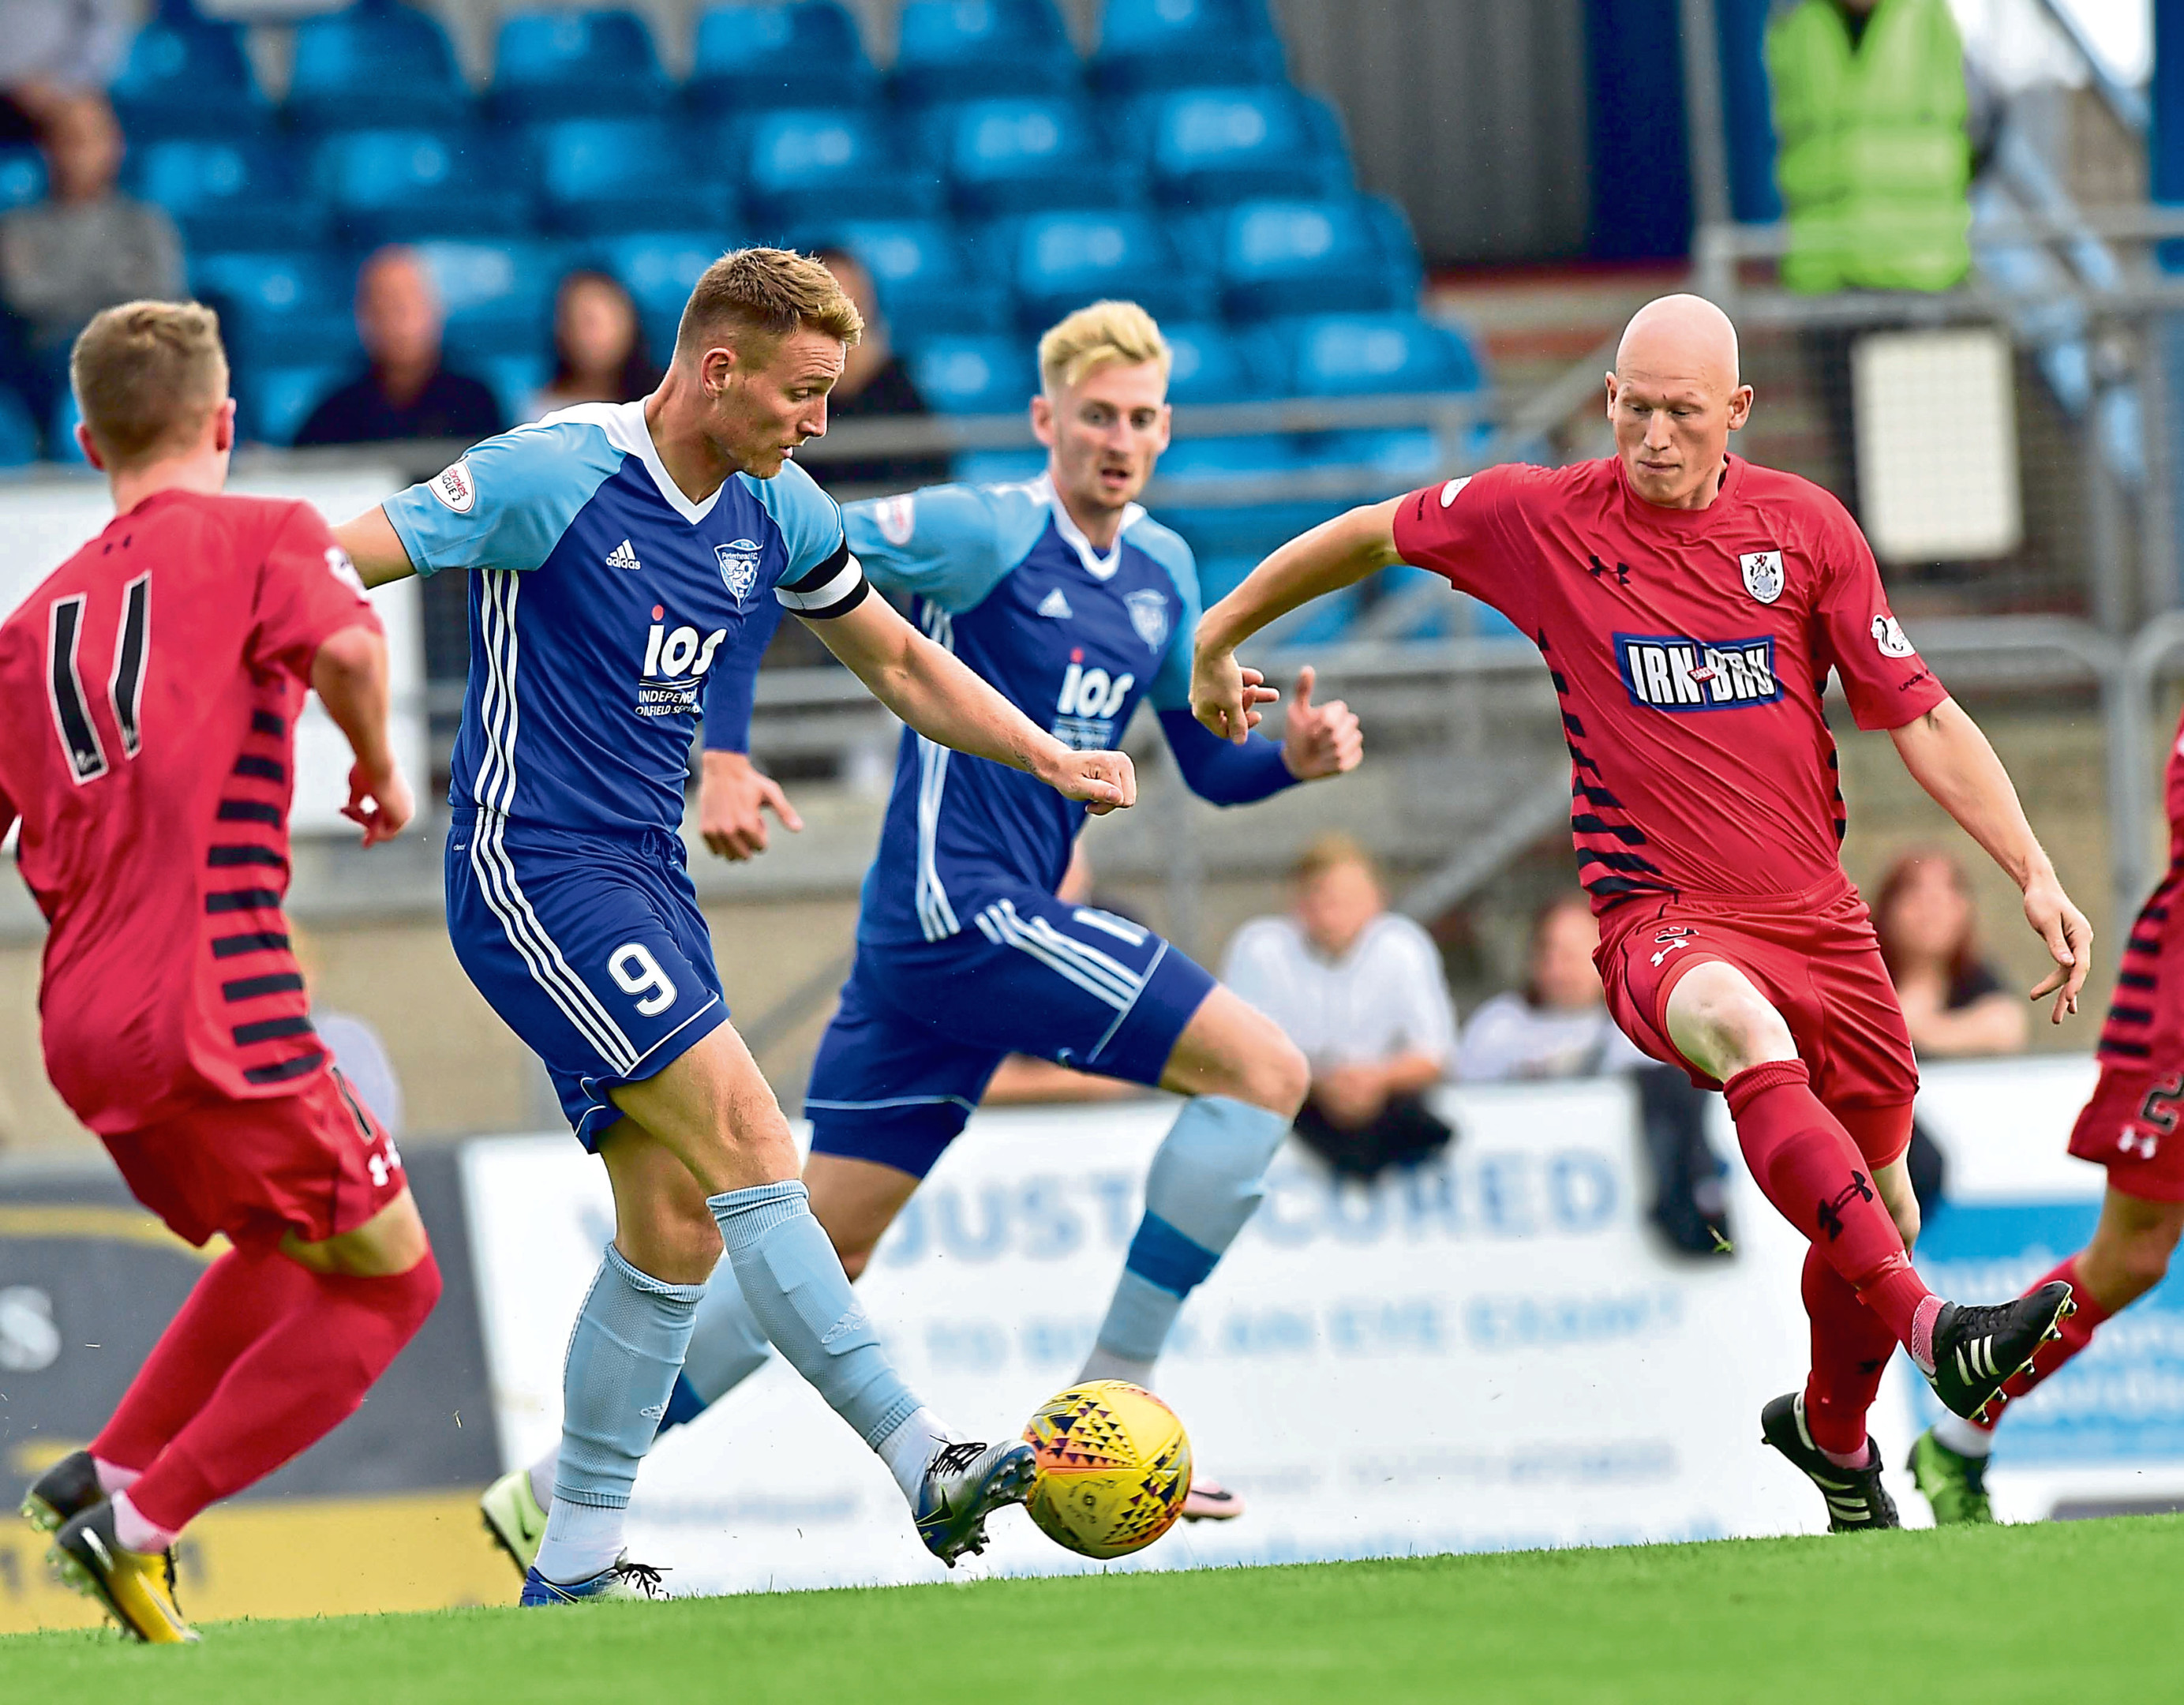 Peterhead goal hero Rory McAllister, second from left, fires a shot at the Queen's Park goal